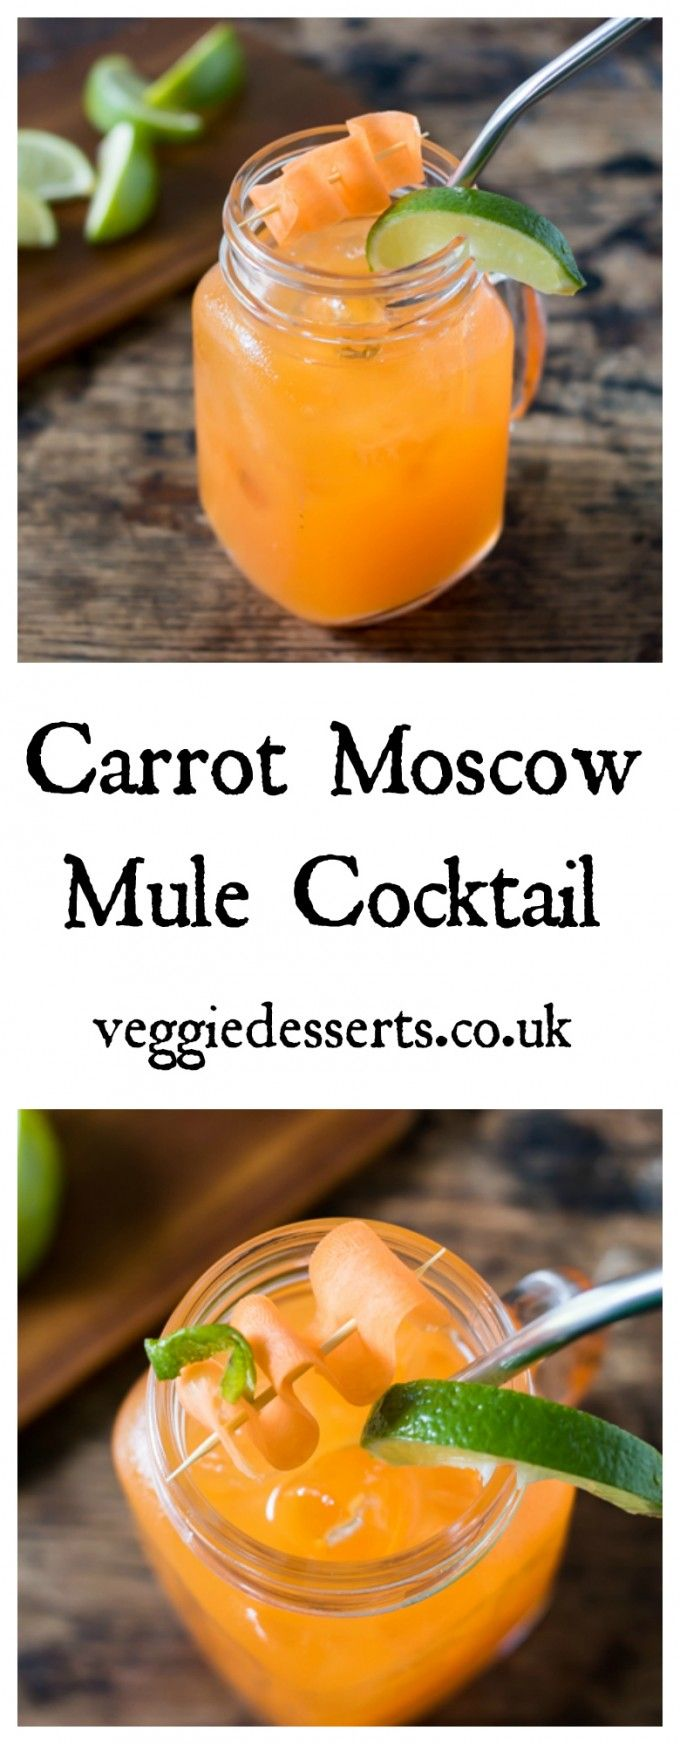 Carrot Moscow Mule | Veggie Desserts Blog >>>This Carrot Moscow Mule is a vegetable twist on the classic cocktail! And hey, adding carrot juice means it's practically like drinking salad, right?  veggiedesserts.co.uk